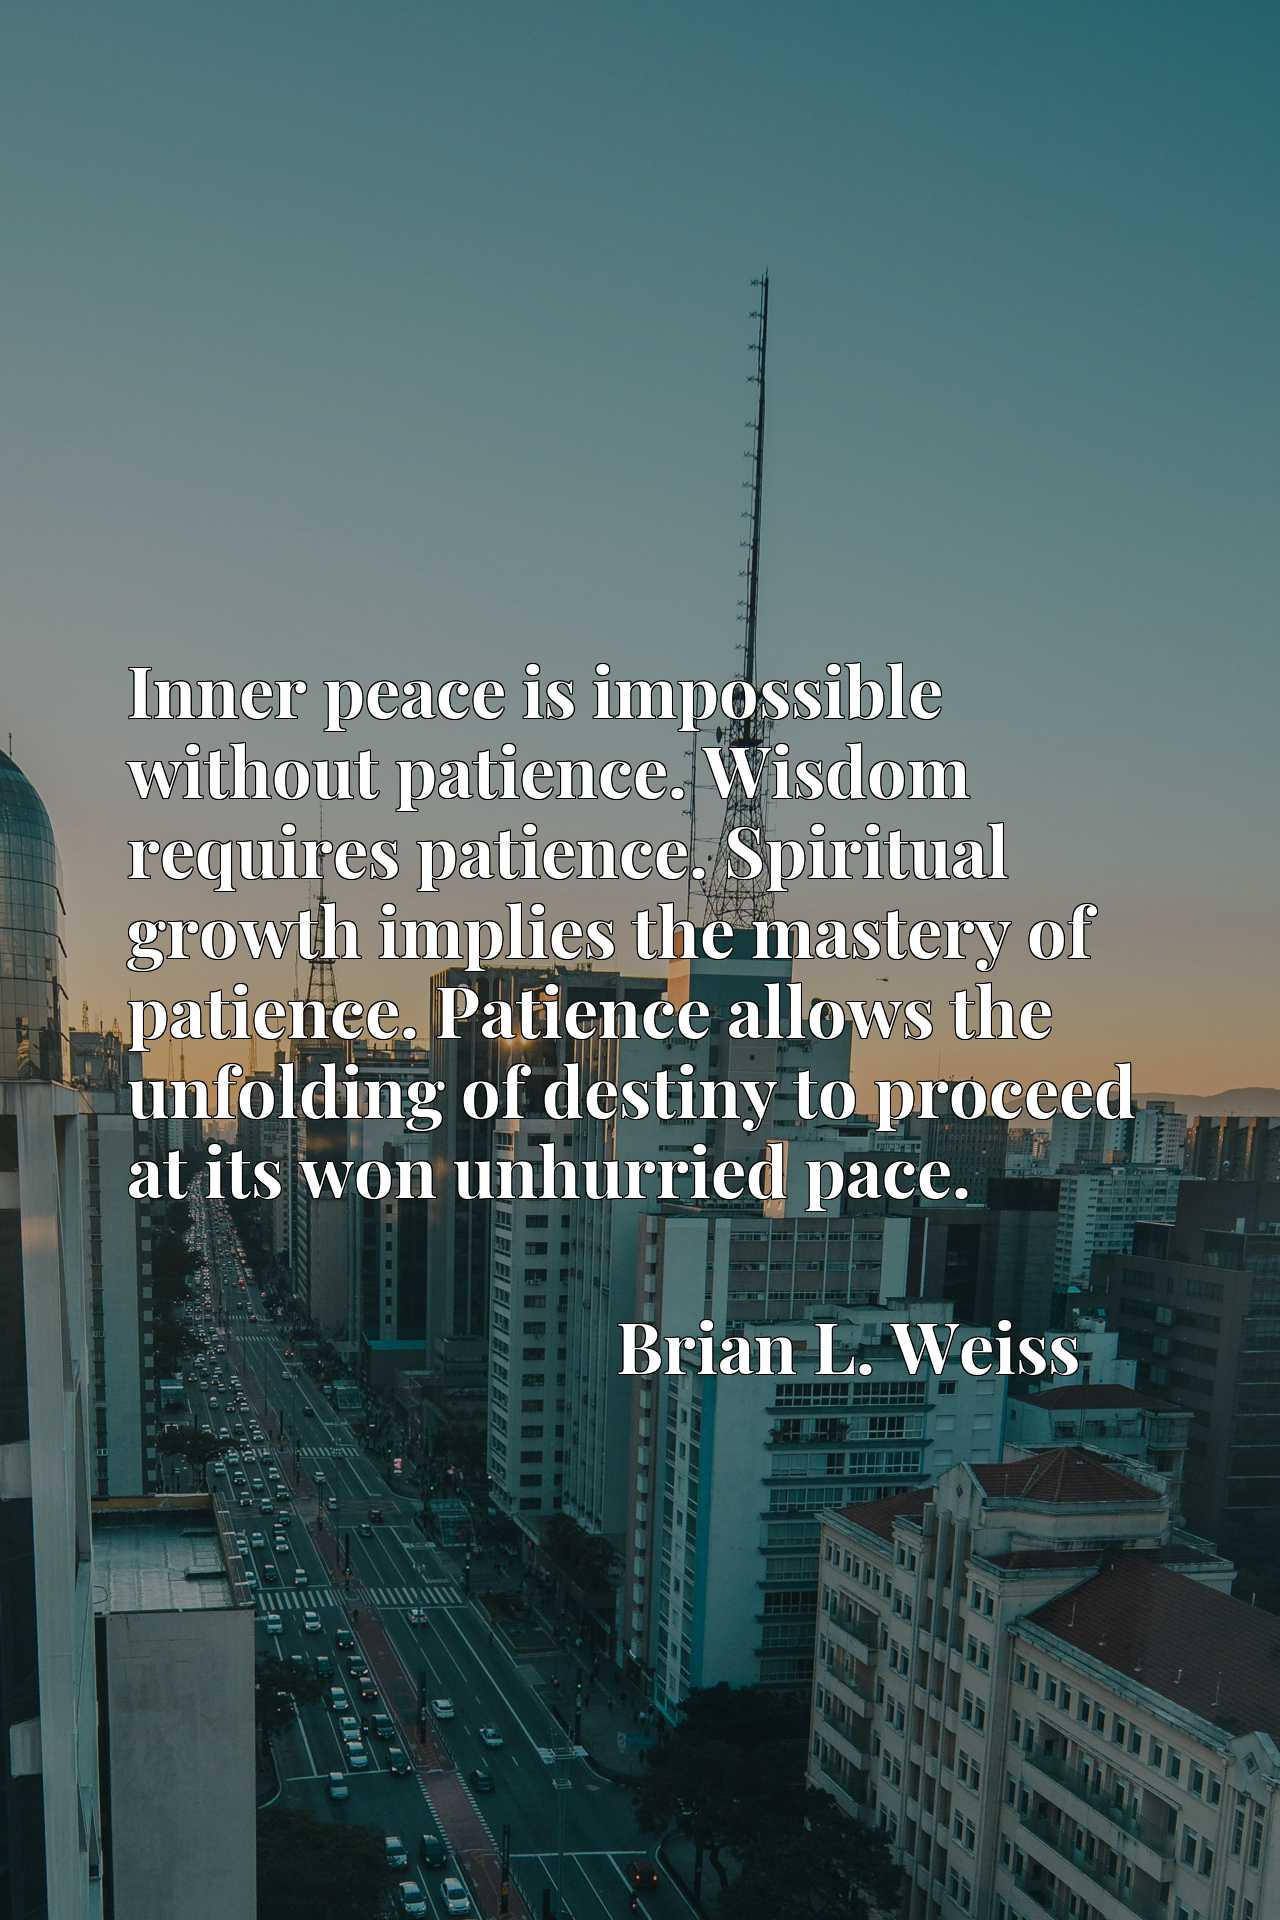 Inner peace is impossible without patience. Wisdom requires patience. Spiritual growth implies the mastery of patience. Patience allows the unfolding of destiny to proceed at its won unhurried pace.